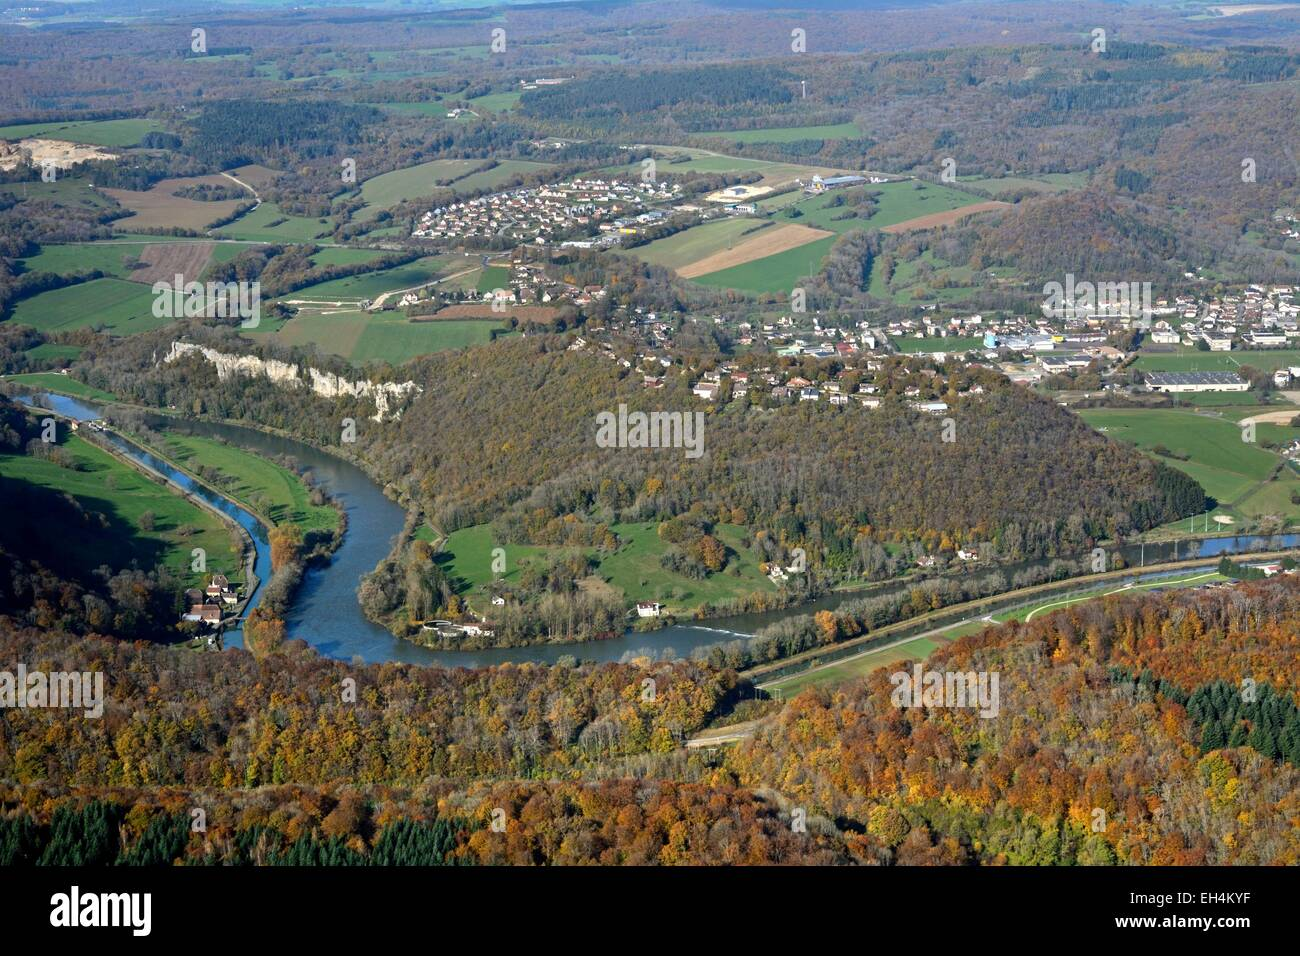 France, Doubs, Baume les Dames, Doubs valley and the Rhone-Rhine canal in autumn (aerial view) - Stock Image